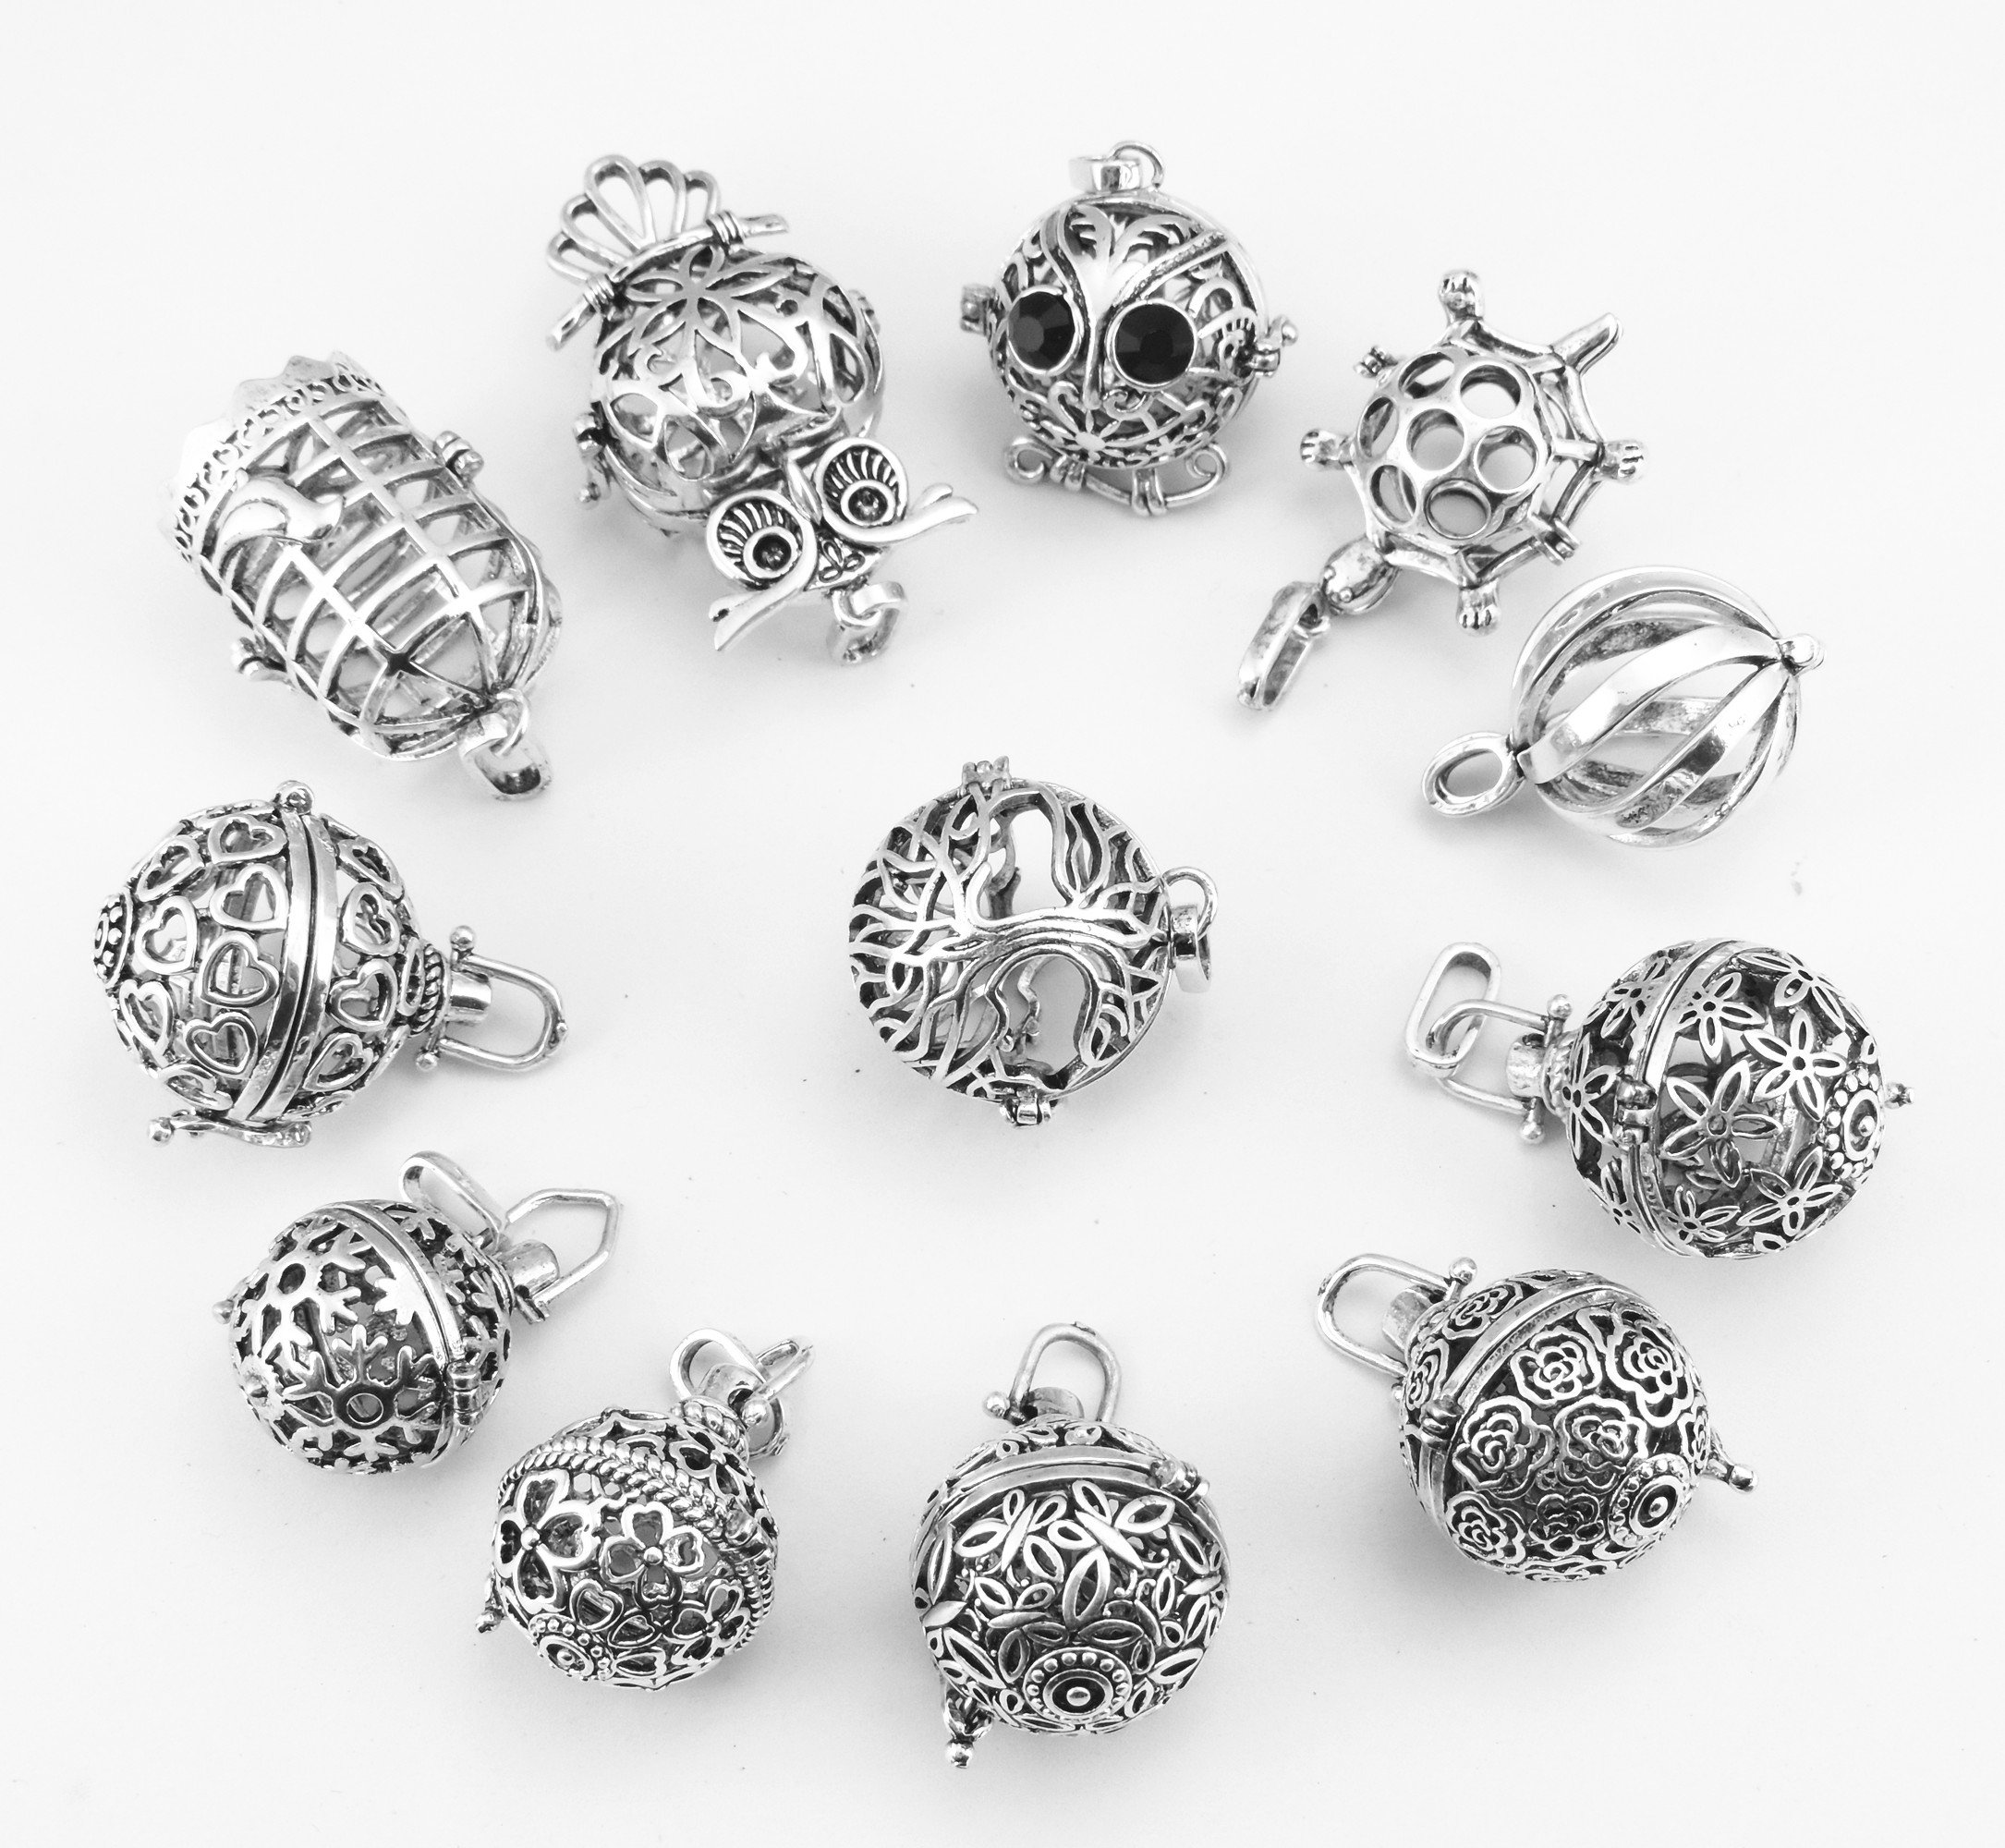 Yaoding 12pcs Mix Hollow Bird Cage Owl Tree Tortoise Ball Locket Lava Stone Perfume Fragrance Essential Oil Aromatherapy Diffuser Pendant Necklace by Yaoding (Image #3)